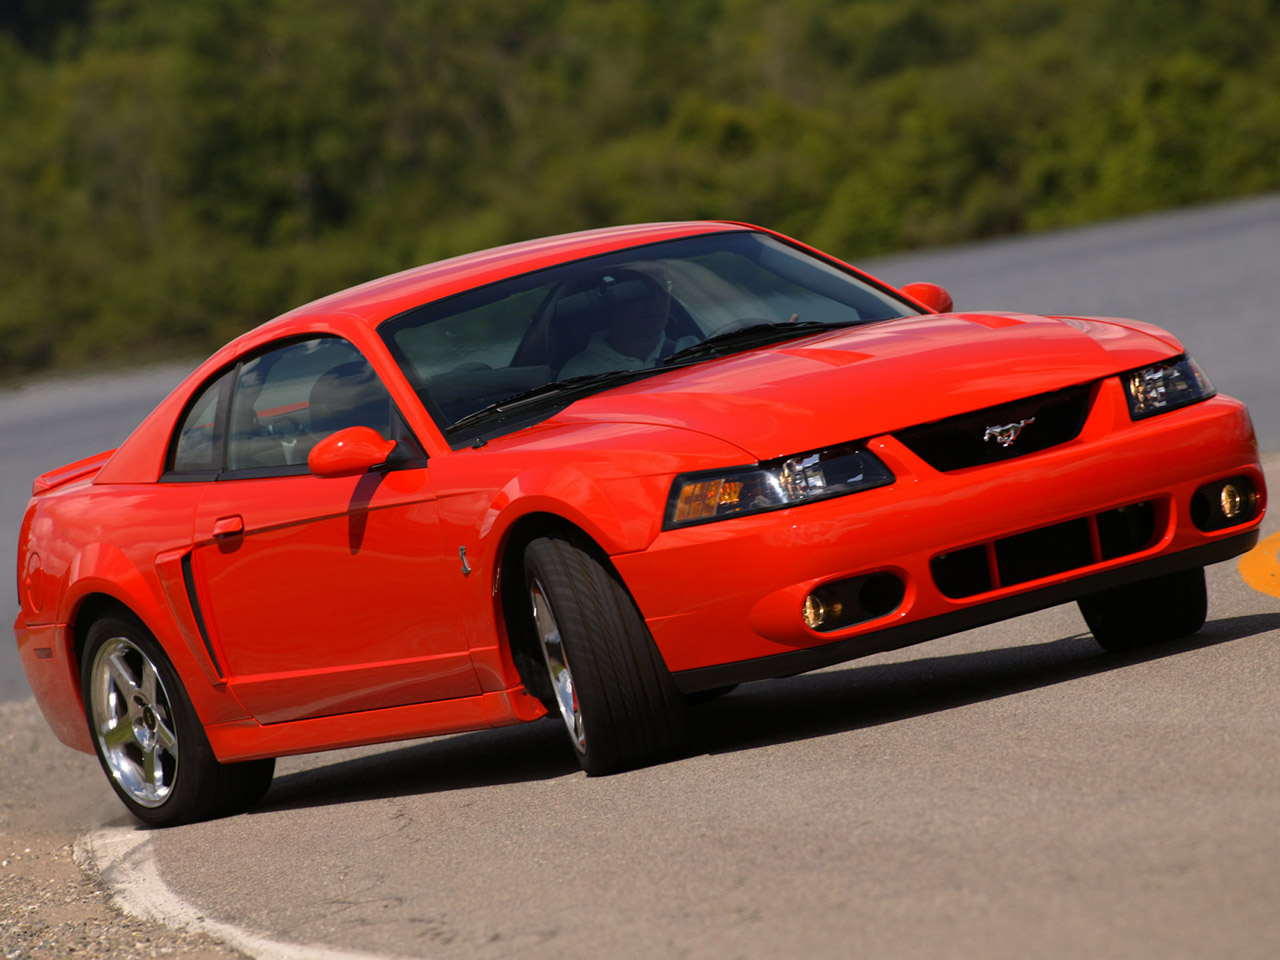 Ford mustang and ford mustang gt 1994 2014 buying guide mustangforums